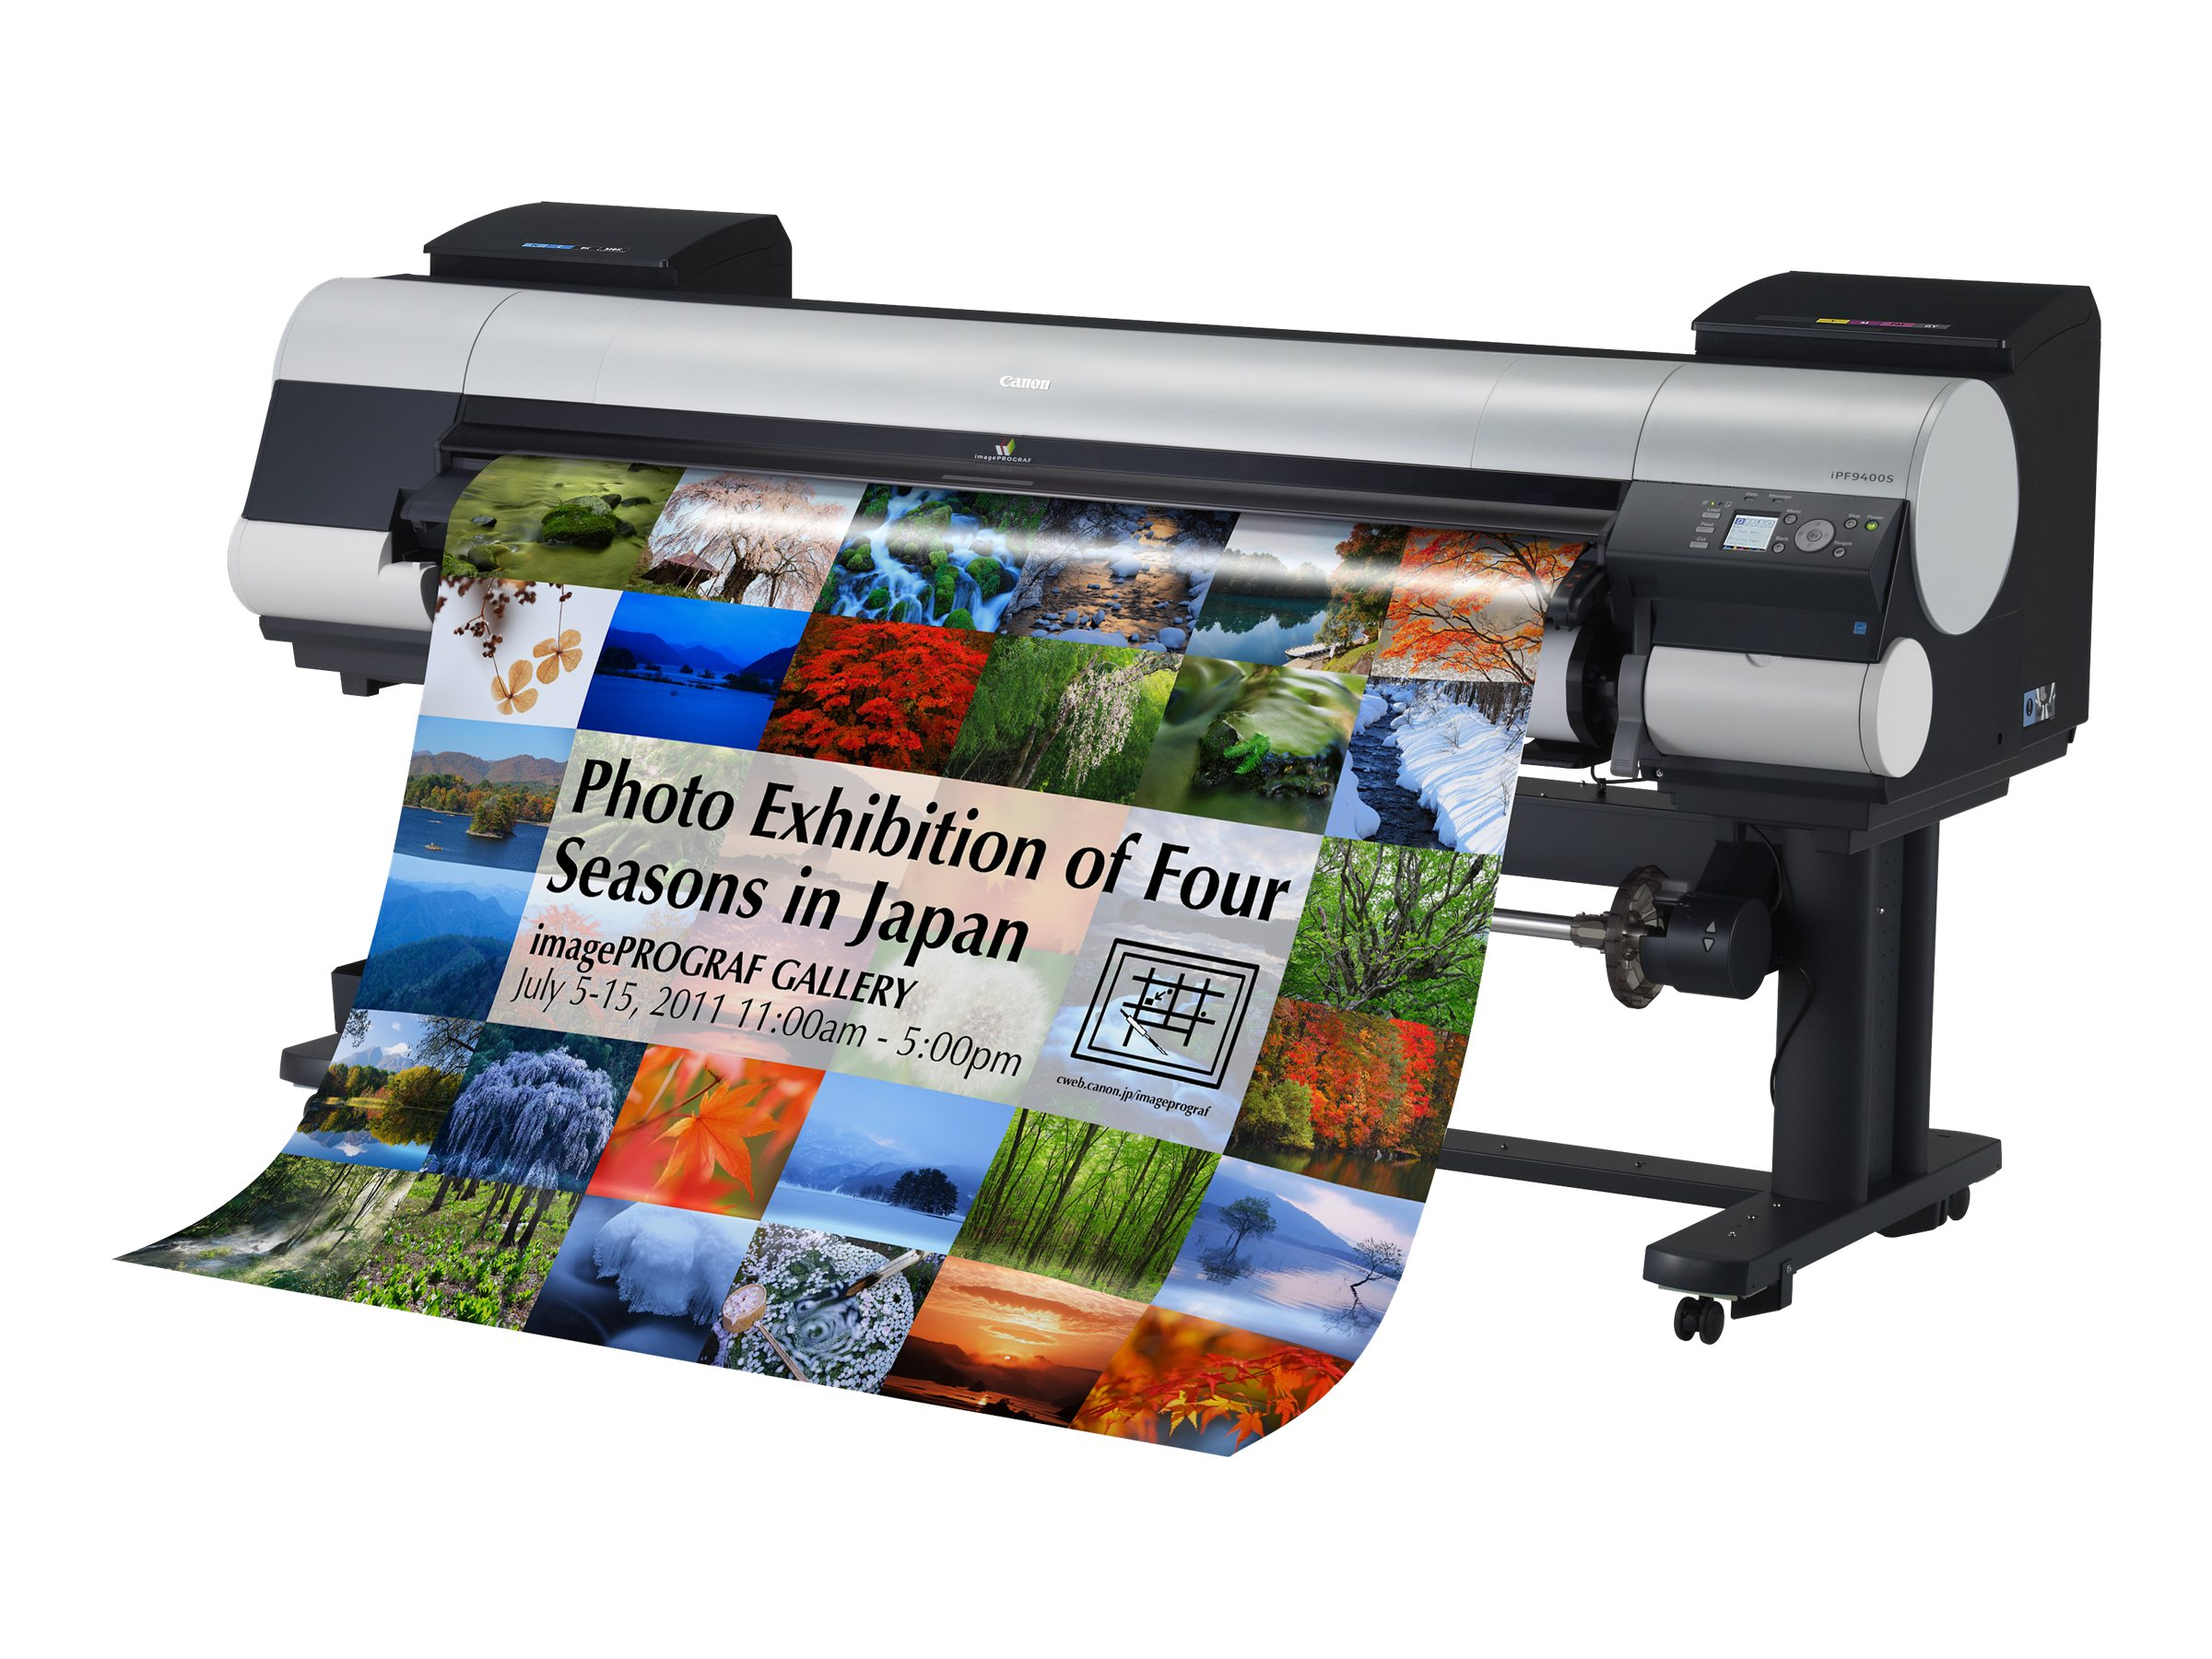 Canon imagePROGRAF iPF9400S Graphic Arts & Photo Printer